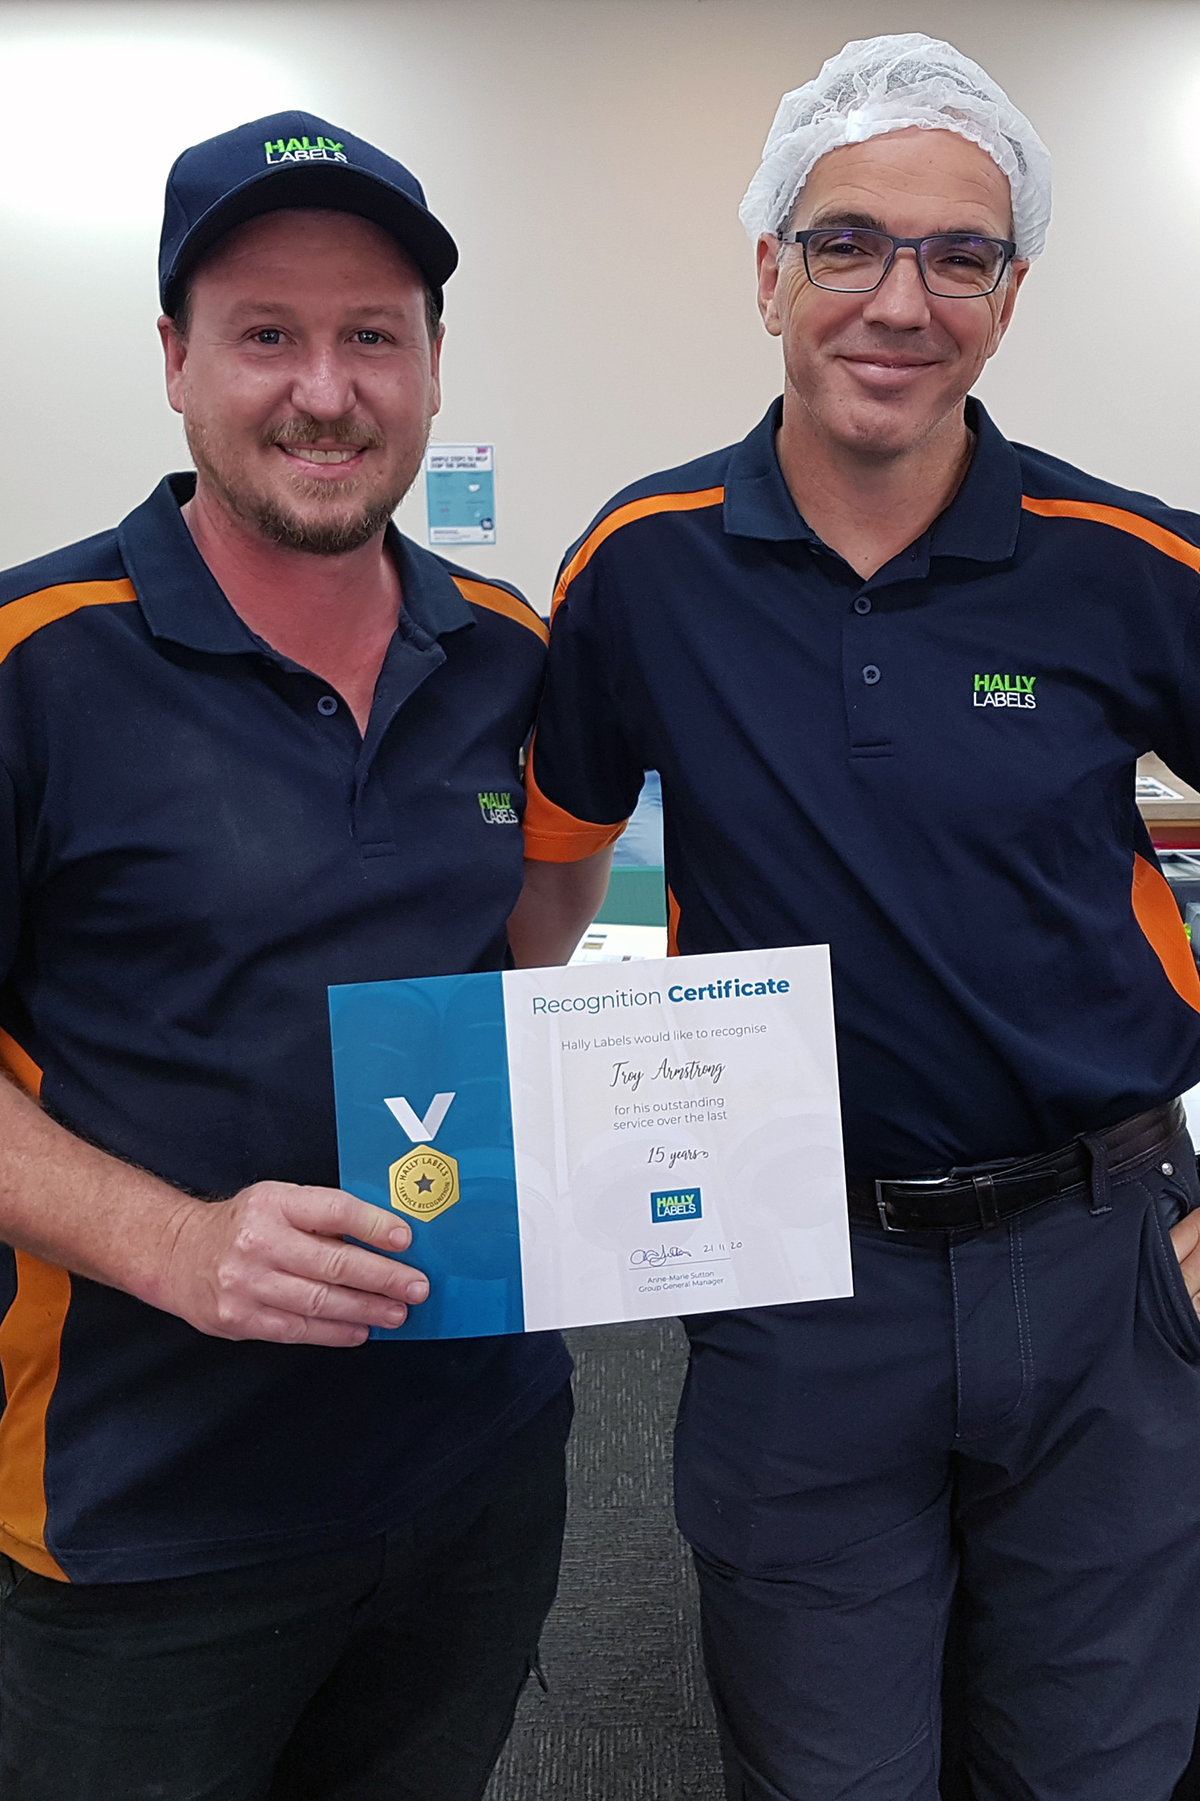 Hally Labels Staff Service Recognition Troy